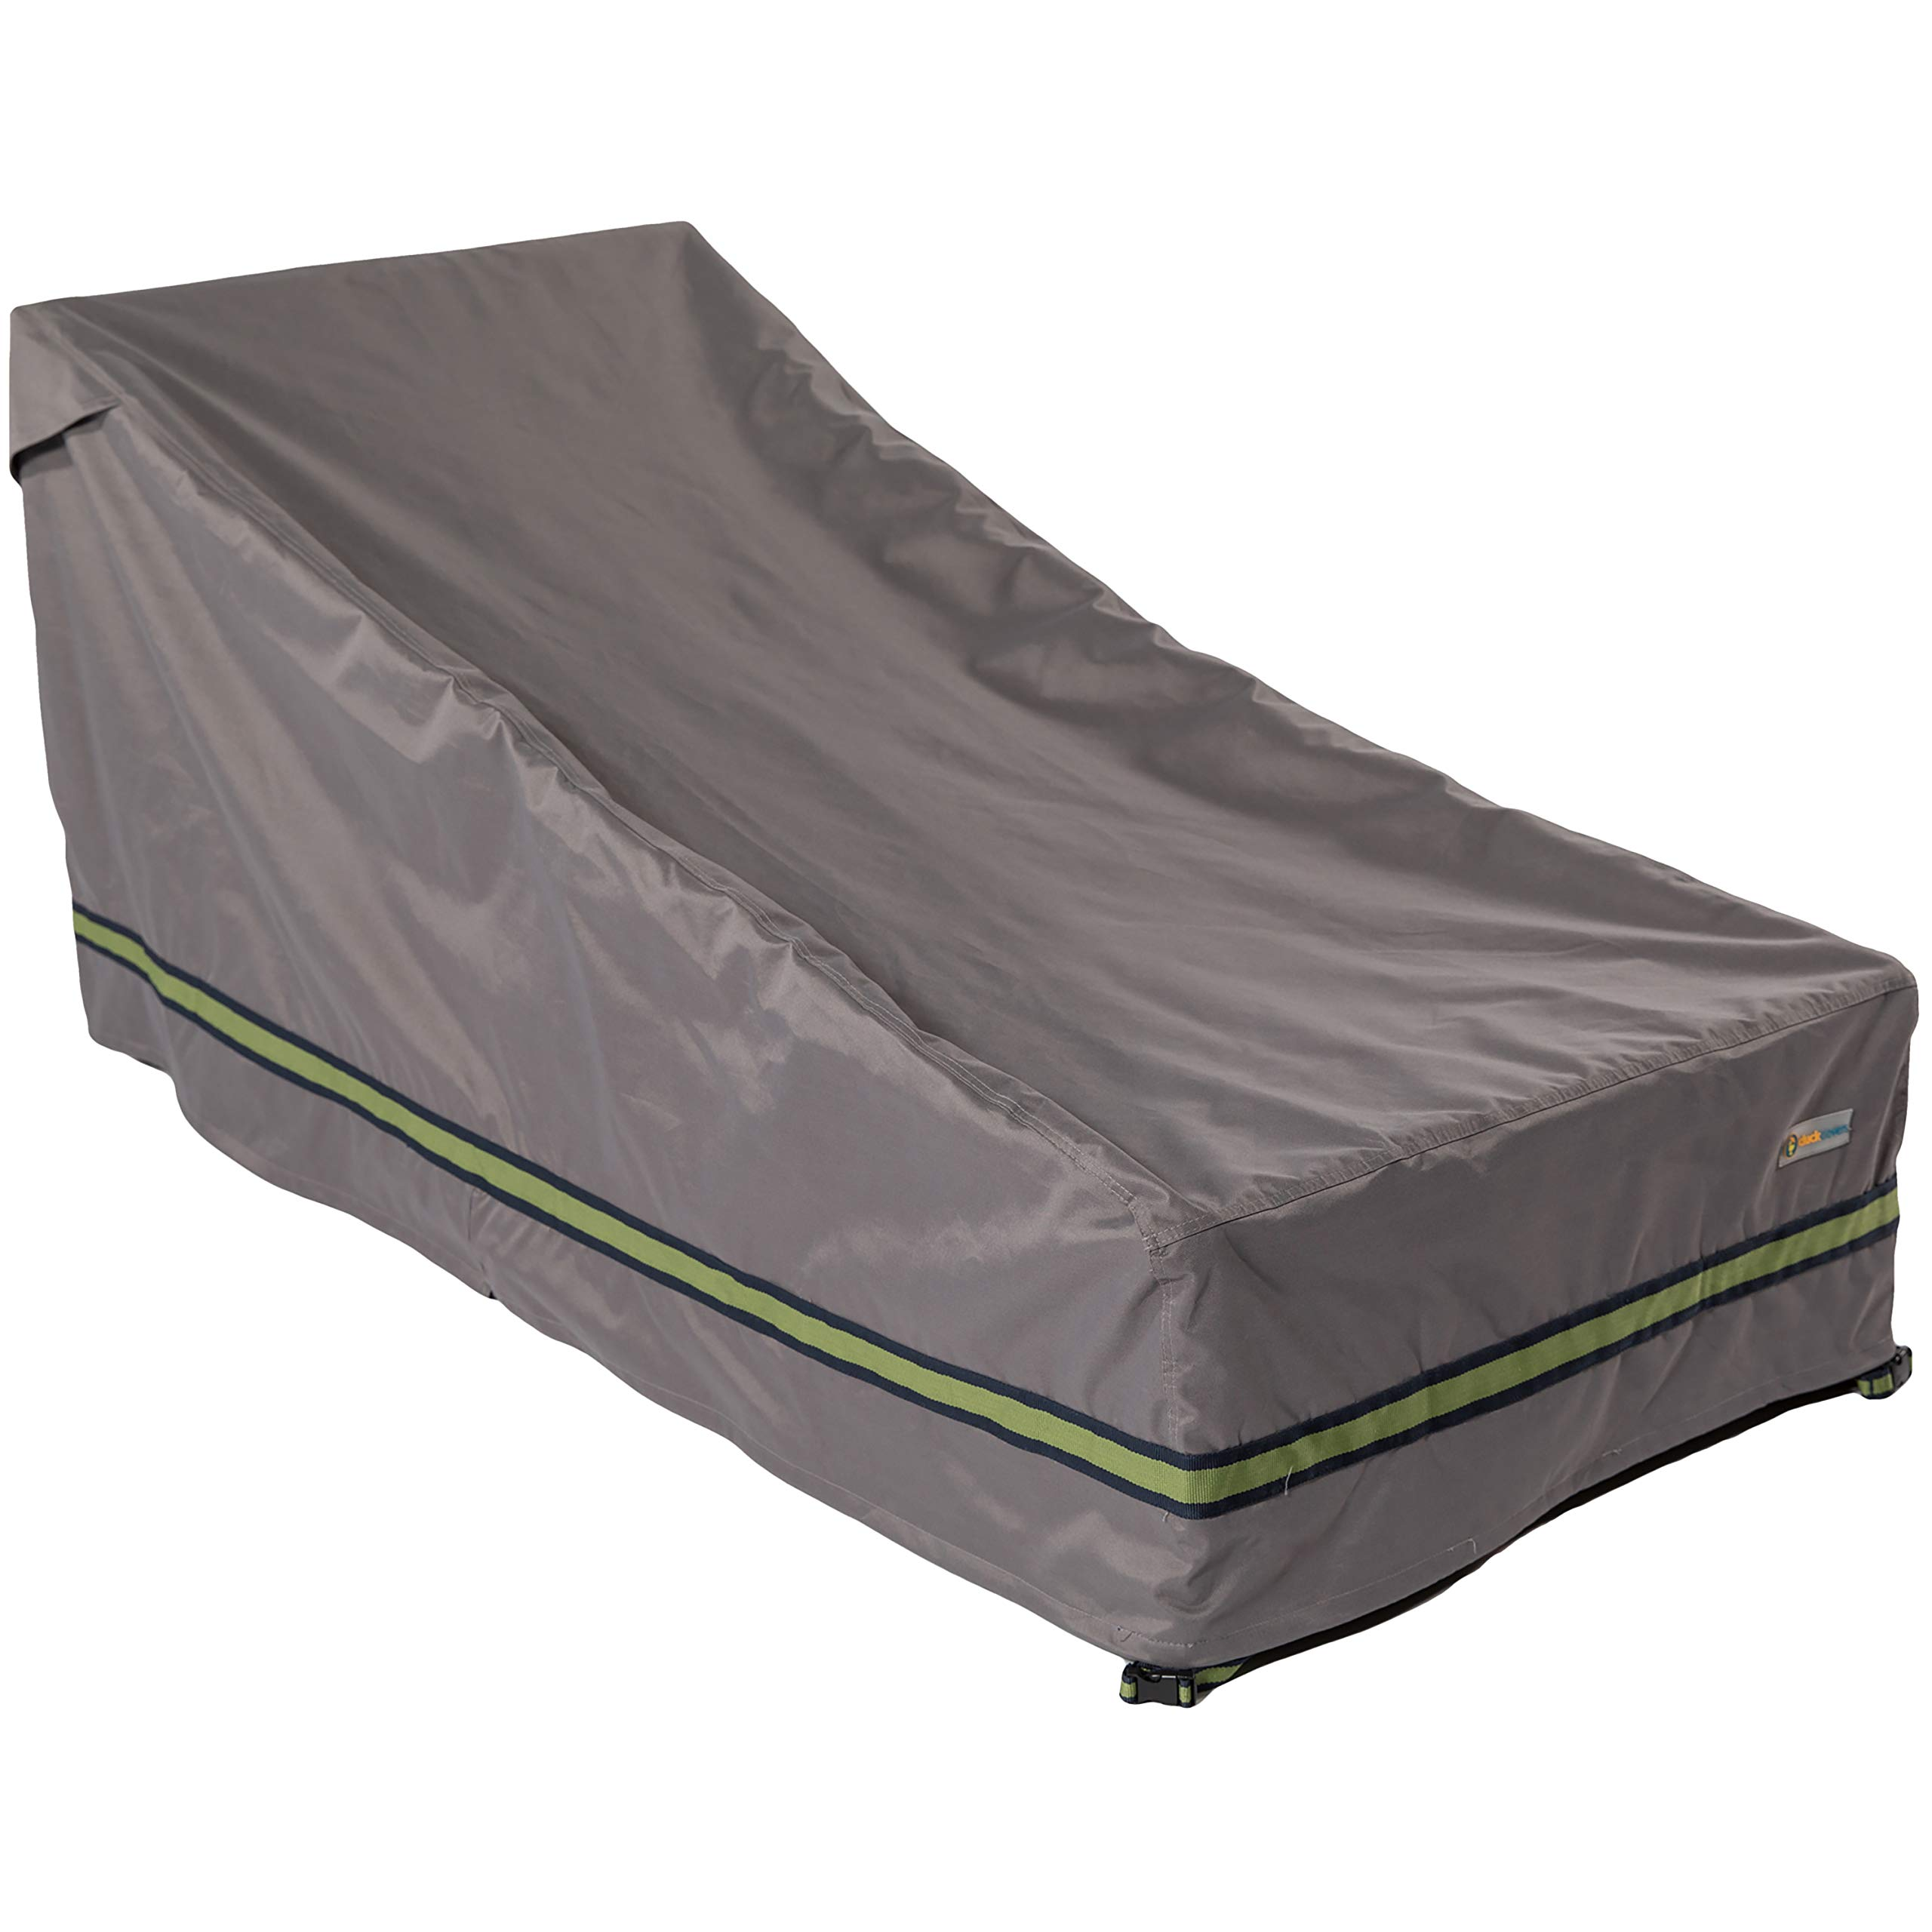 Duck Covers RCE825732 Grey Long Soteria Rainproof 82 in. Double Wide Patio Chaise Lounge Cover